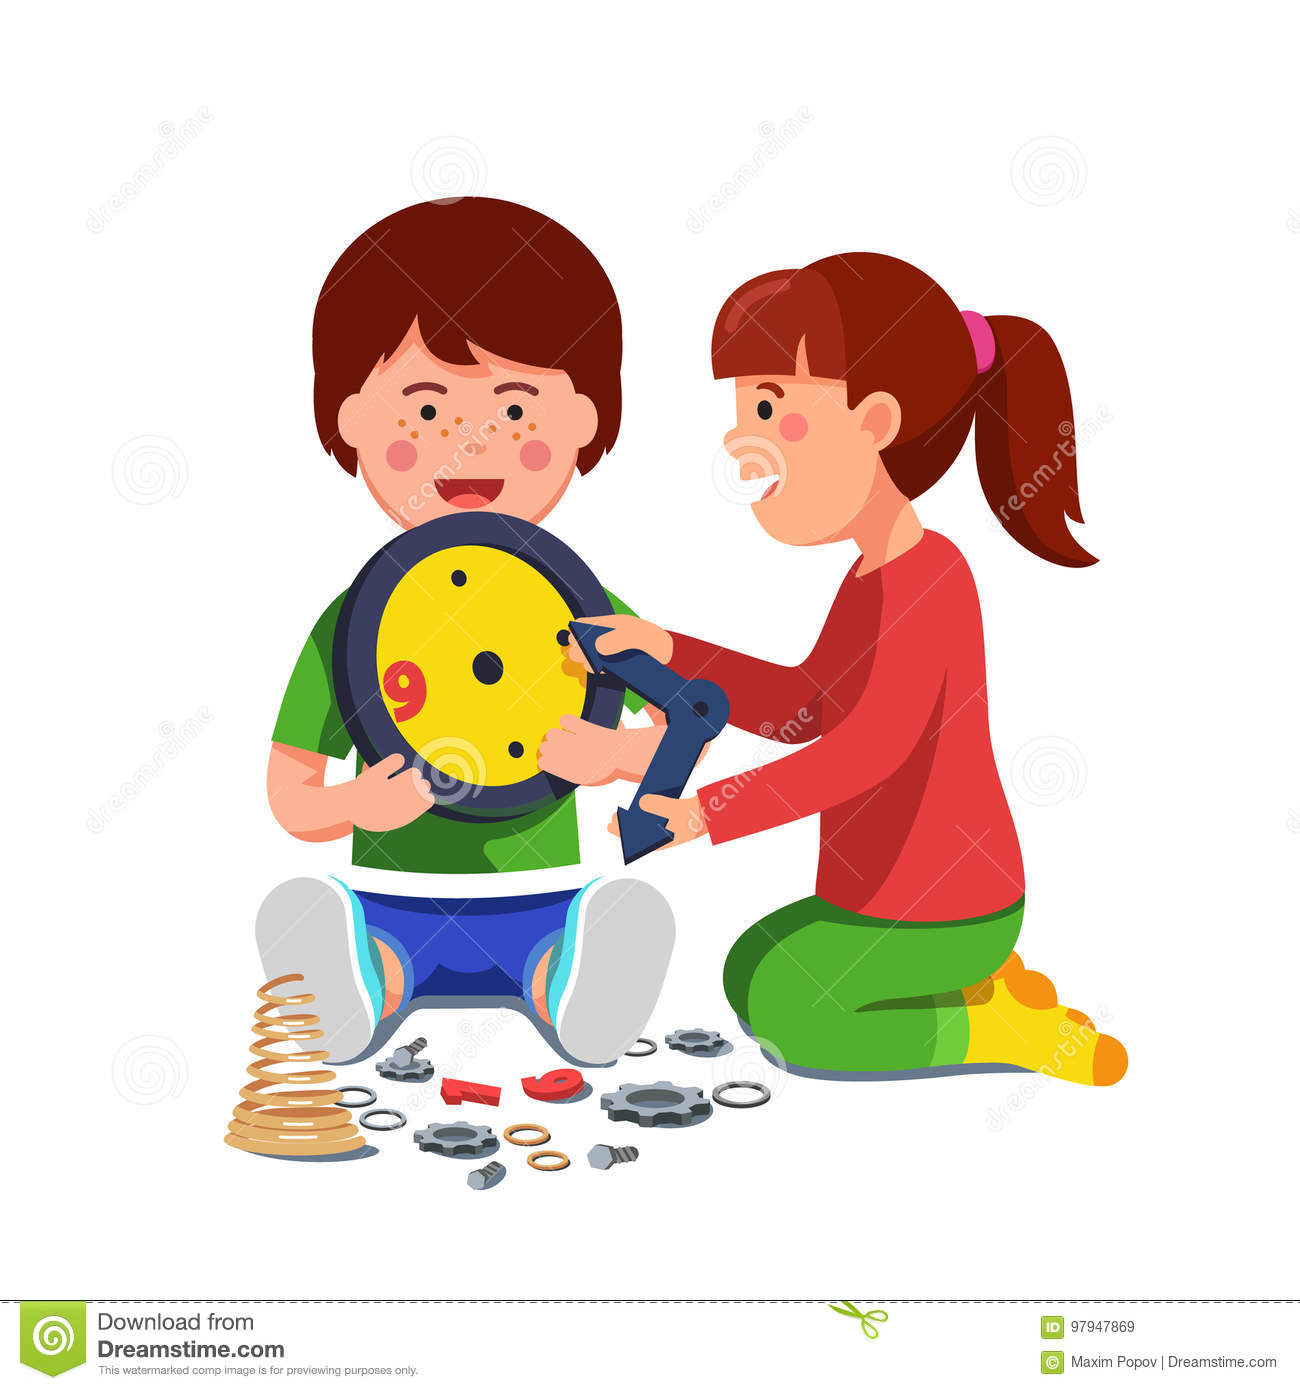 Boy and girl sitting playing with mechanical clock